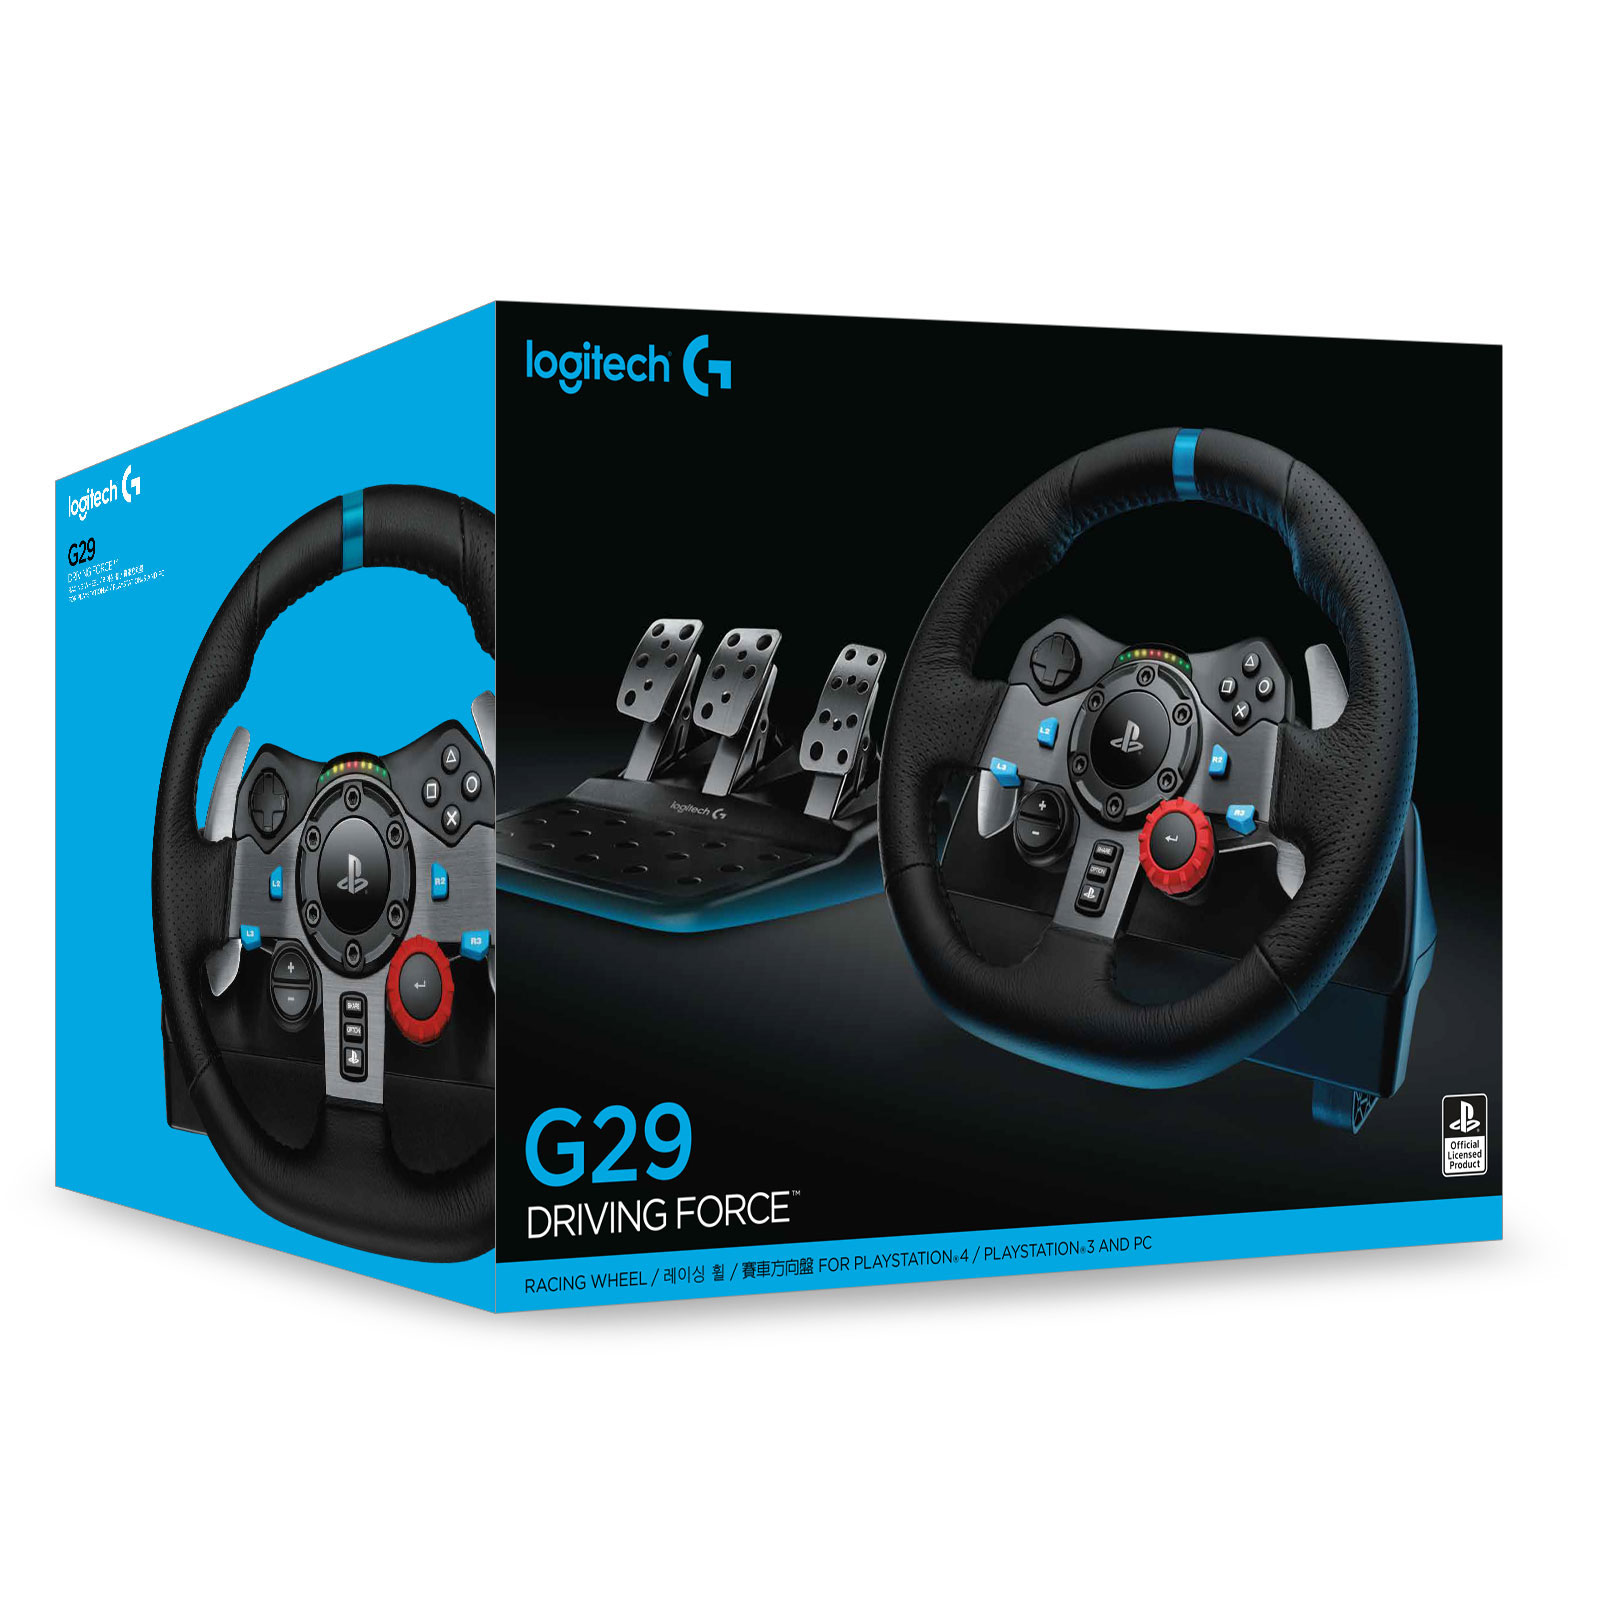 logitech g29 driving force materiel maroc pc. Black Bedroom Furniture Sets. Home Design Ideas